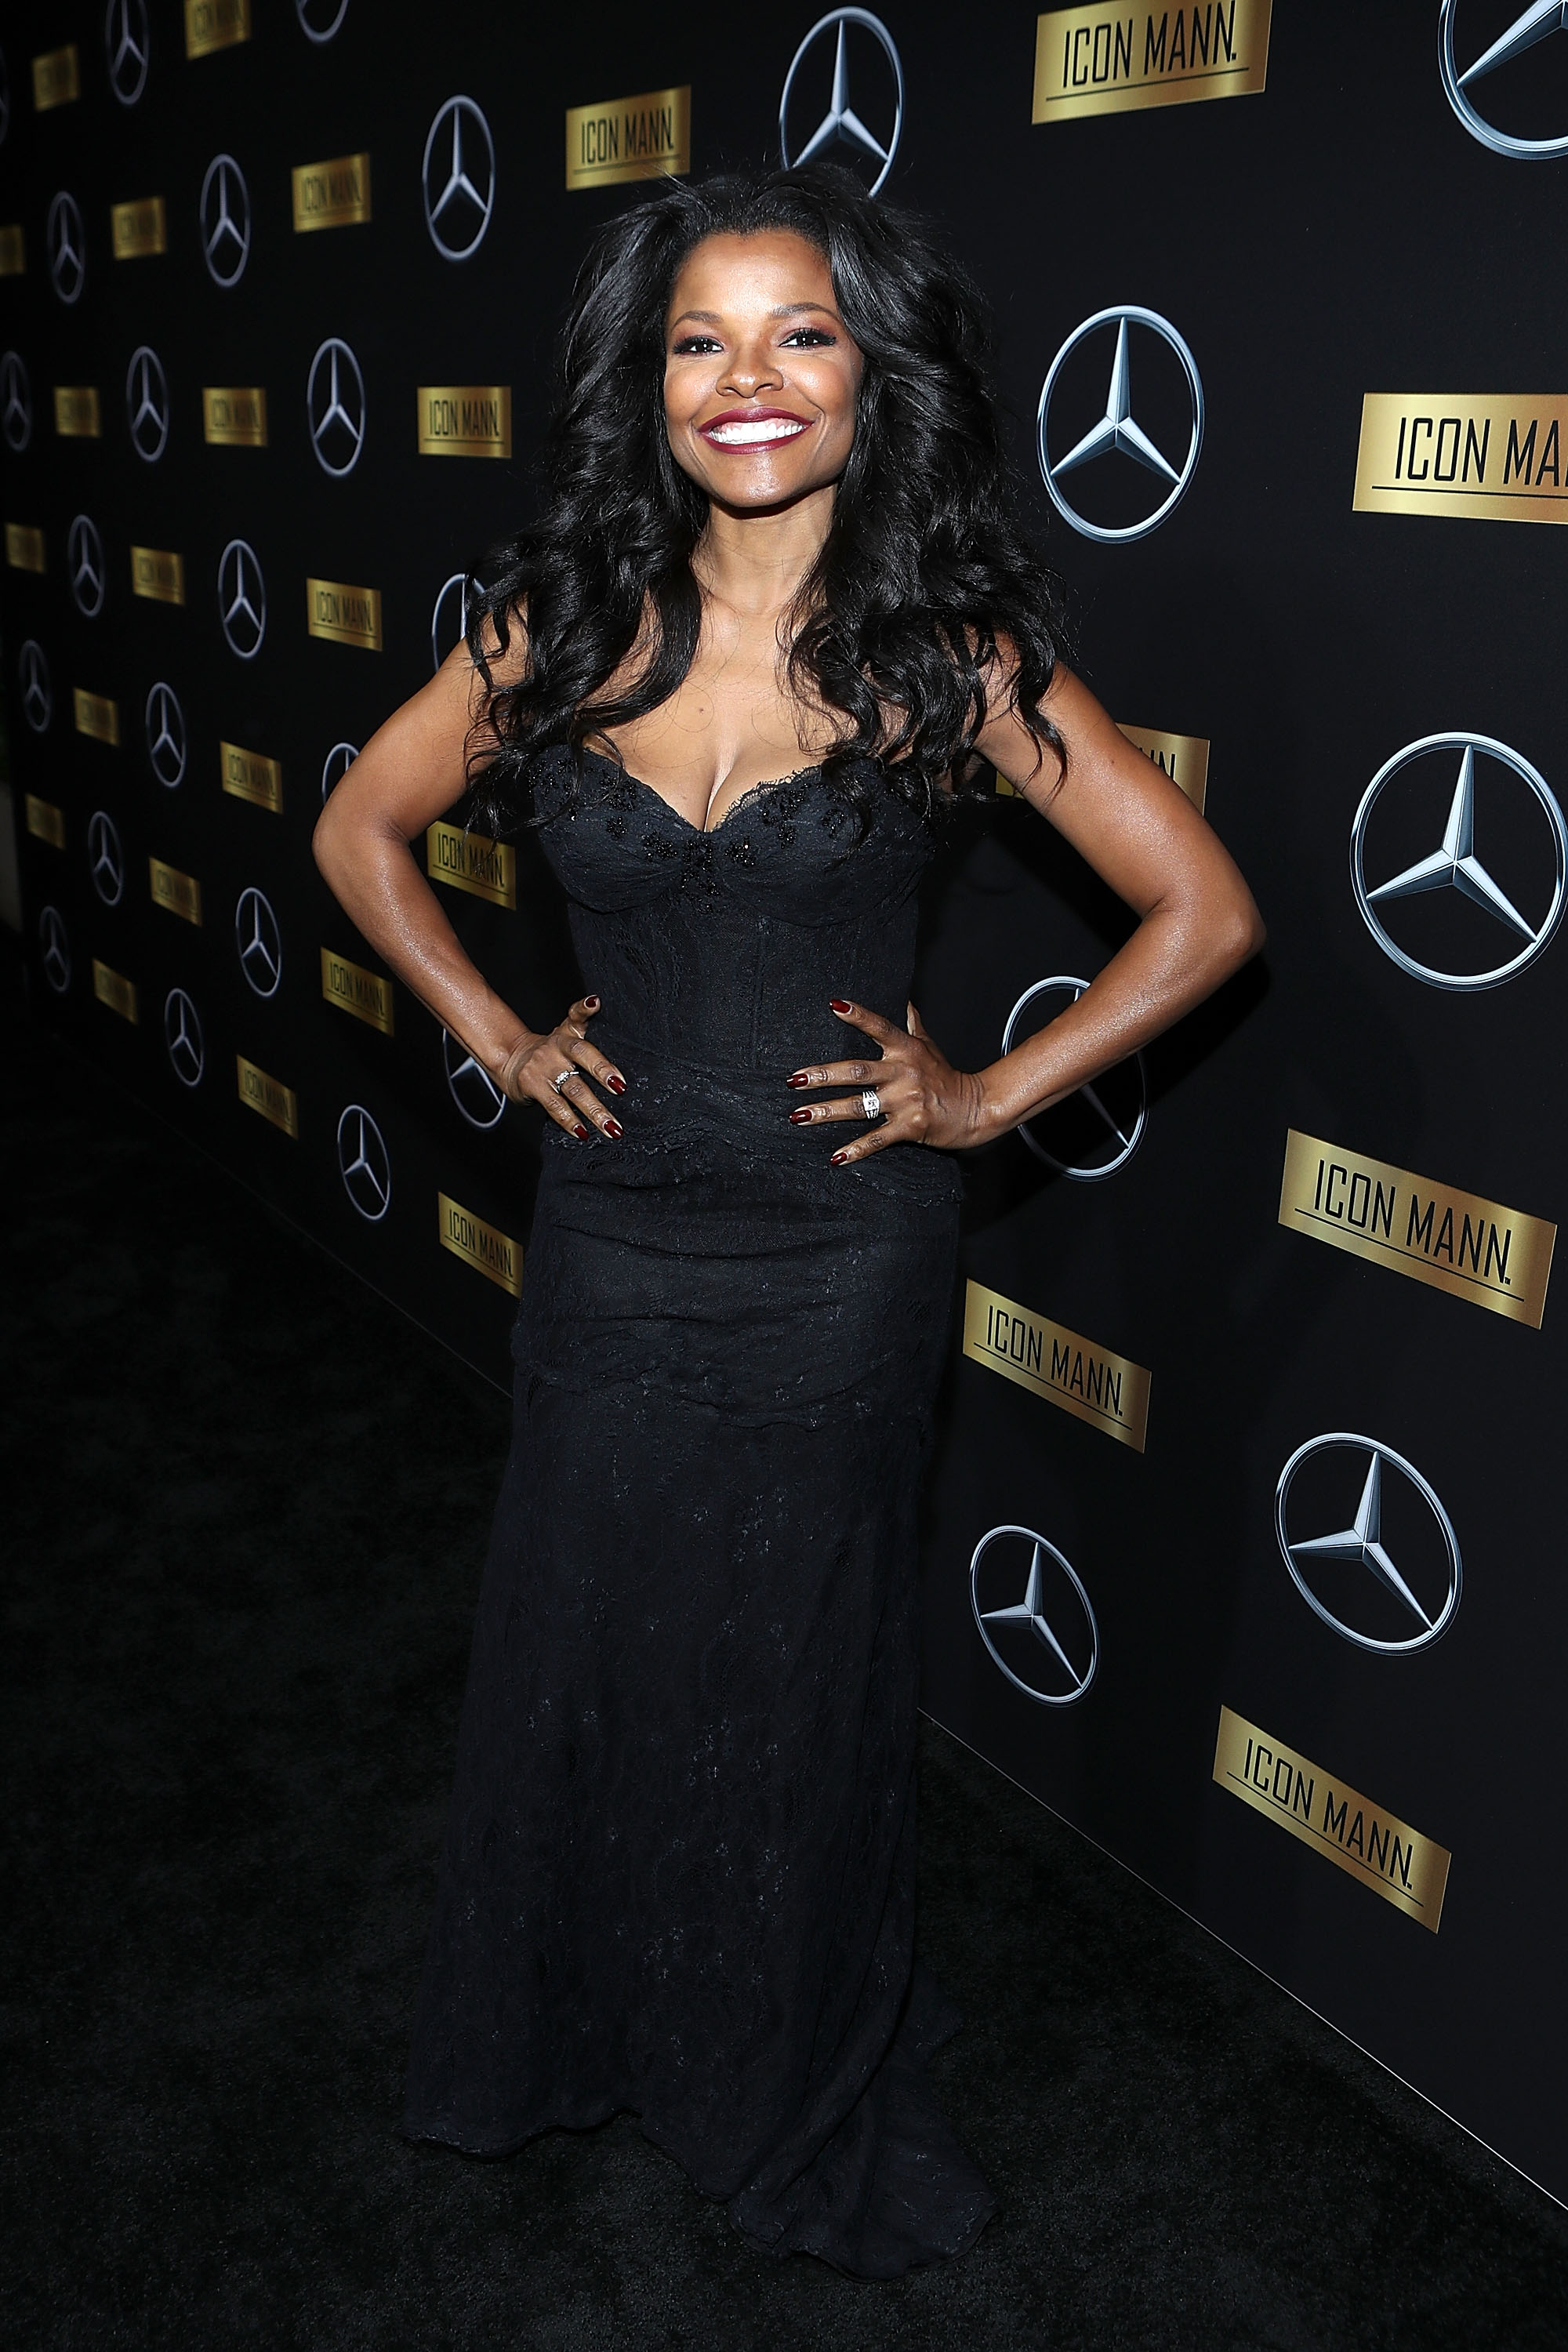 Actress Keesha Sharp (Photo by Randy Shropshire/Getty Images for Mercedes-Benz USA)